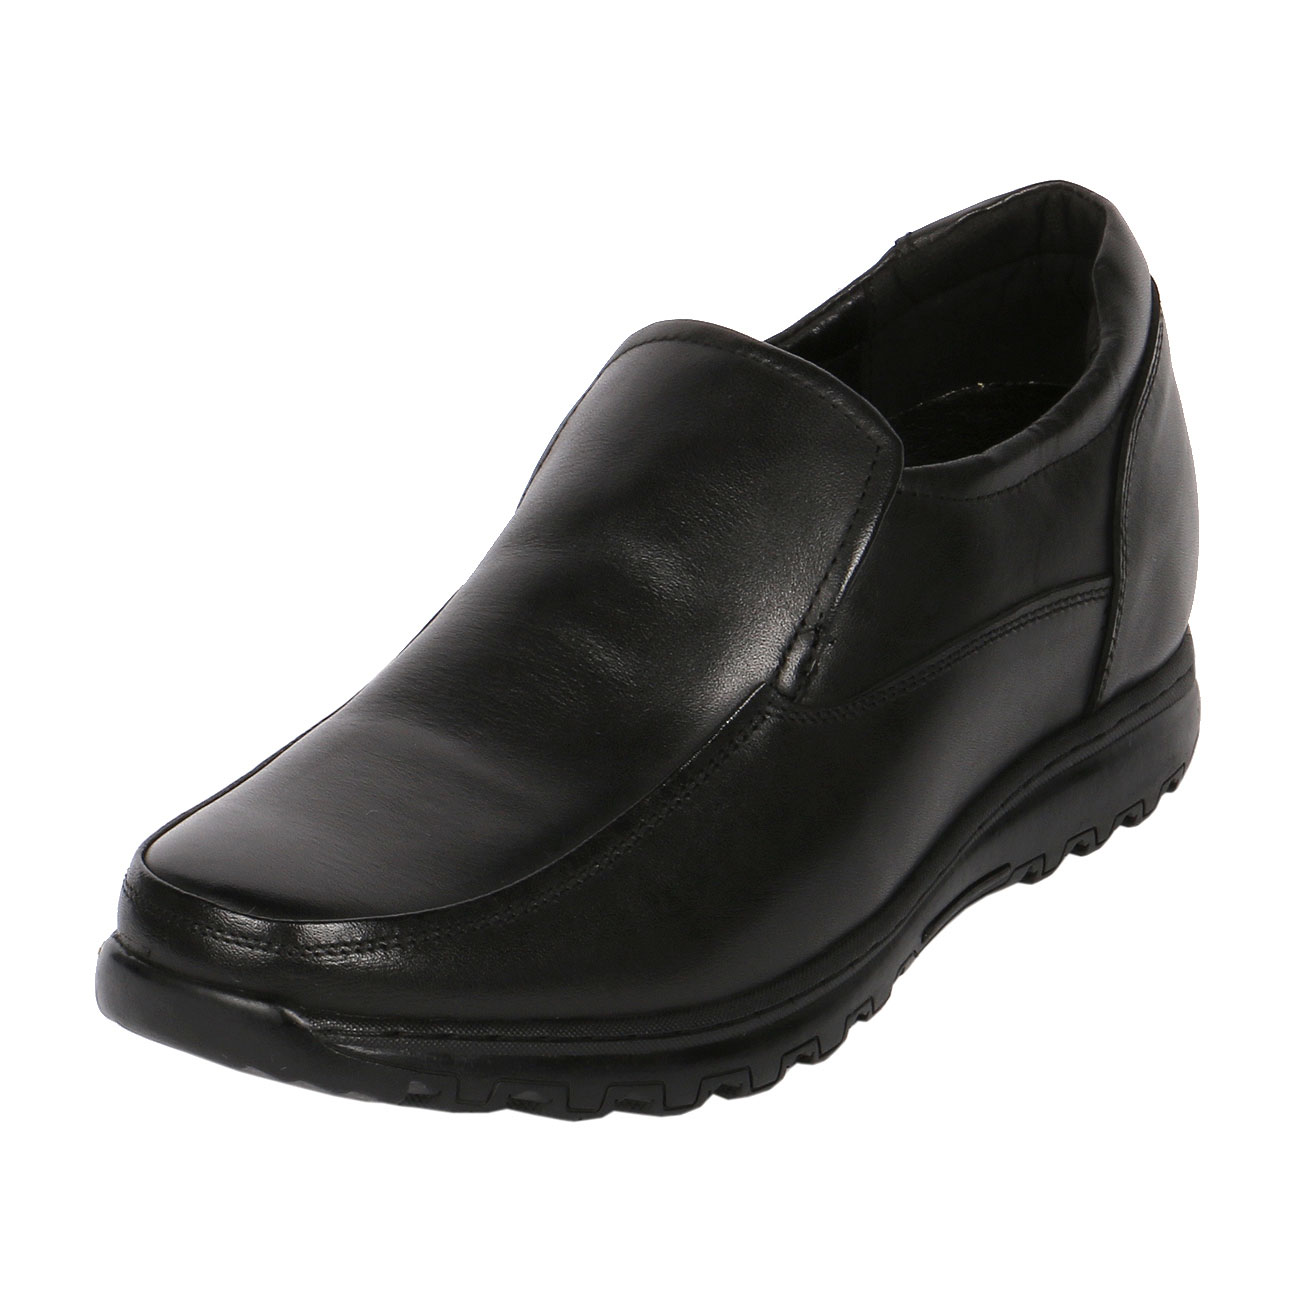 Men's Combination Semi Dress & Casual Shoes 3